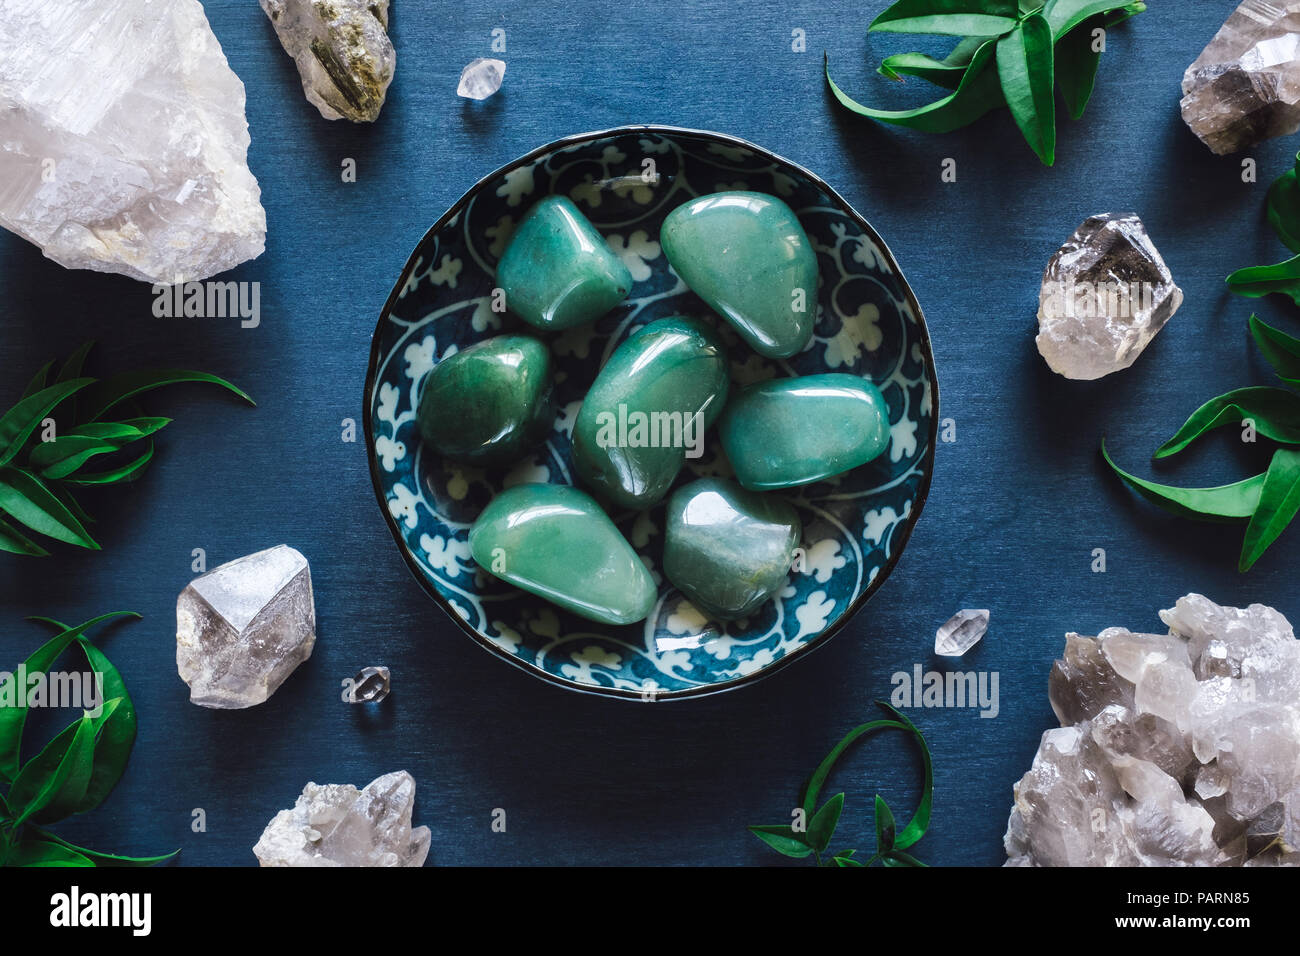 Green Aventurine and Quartz on Blue Table Stock Photo